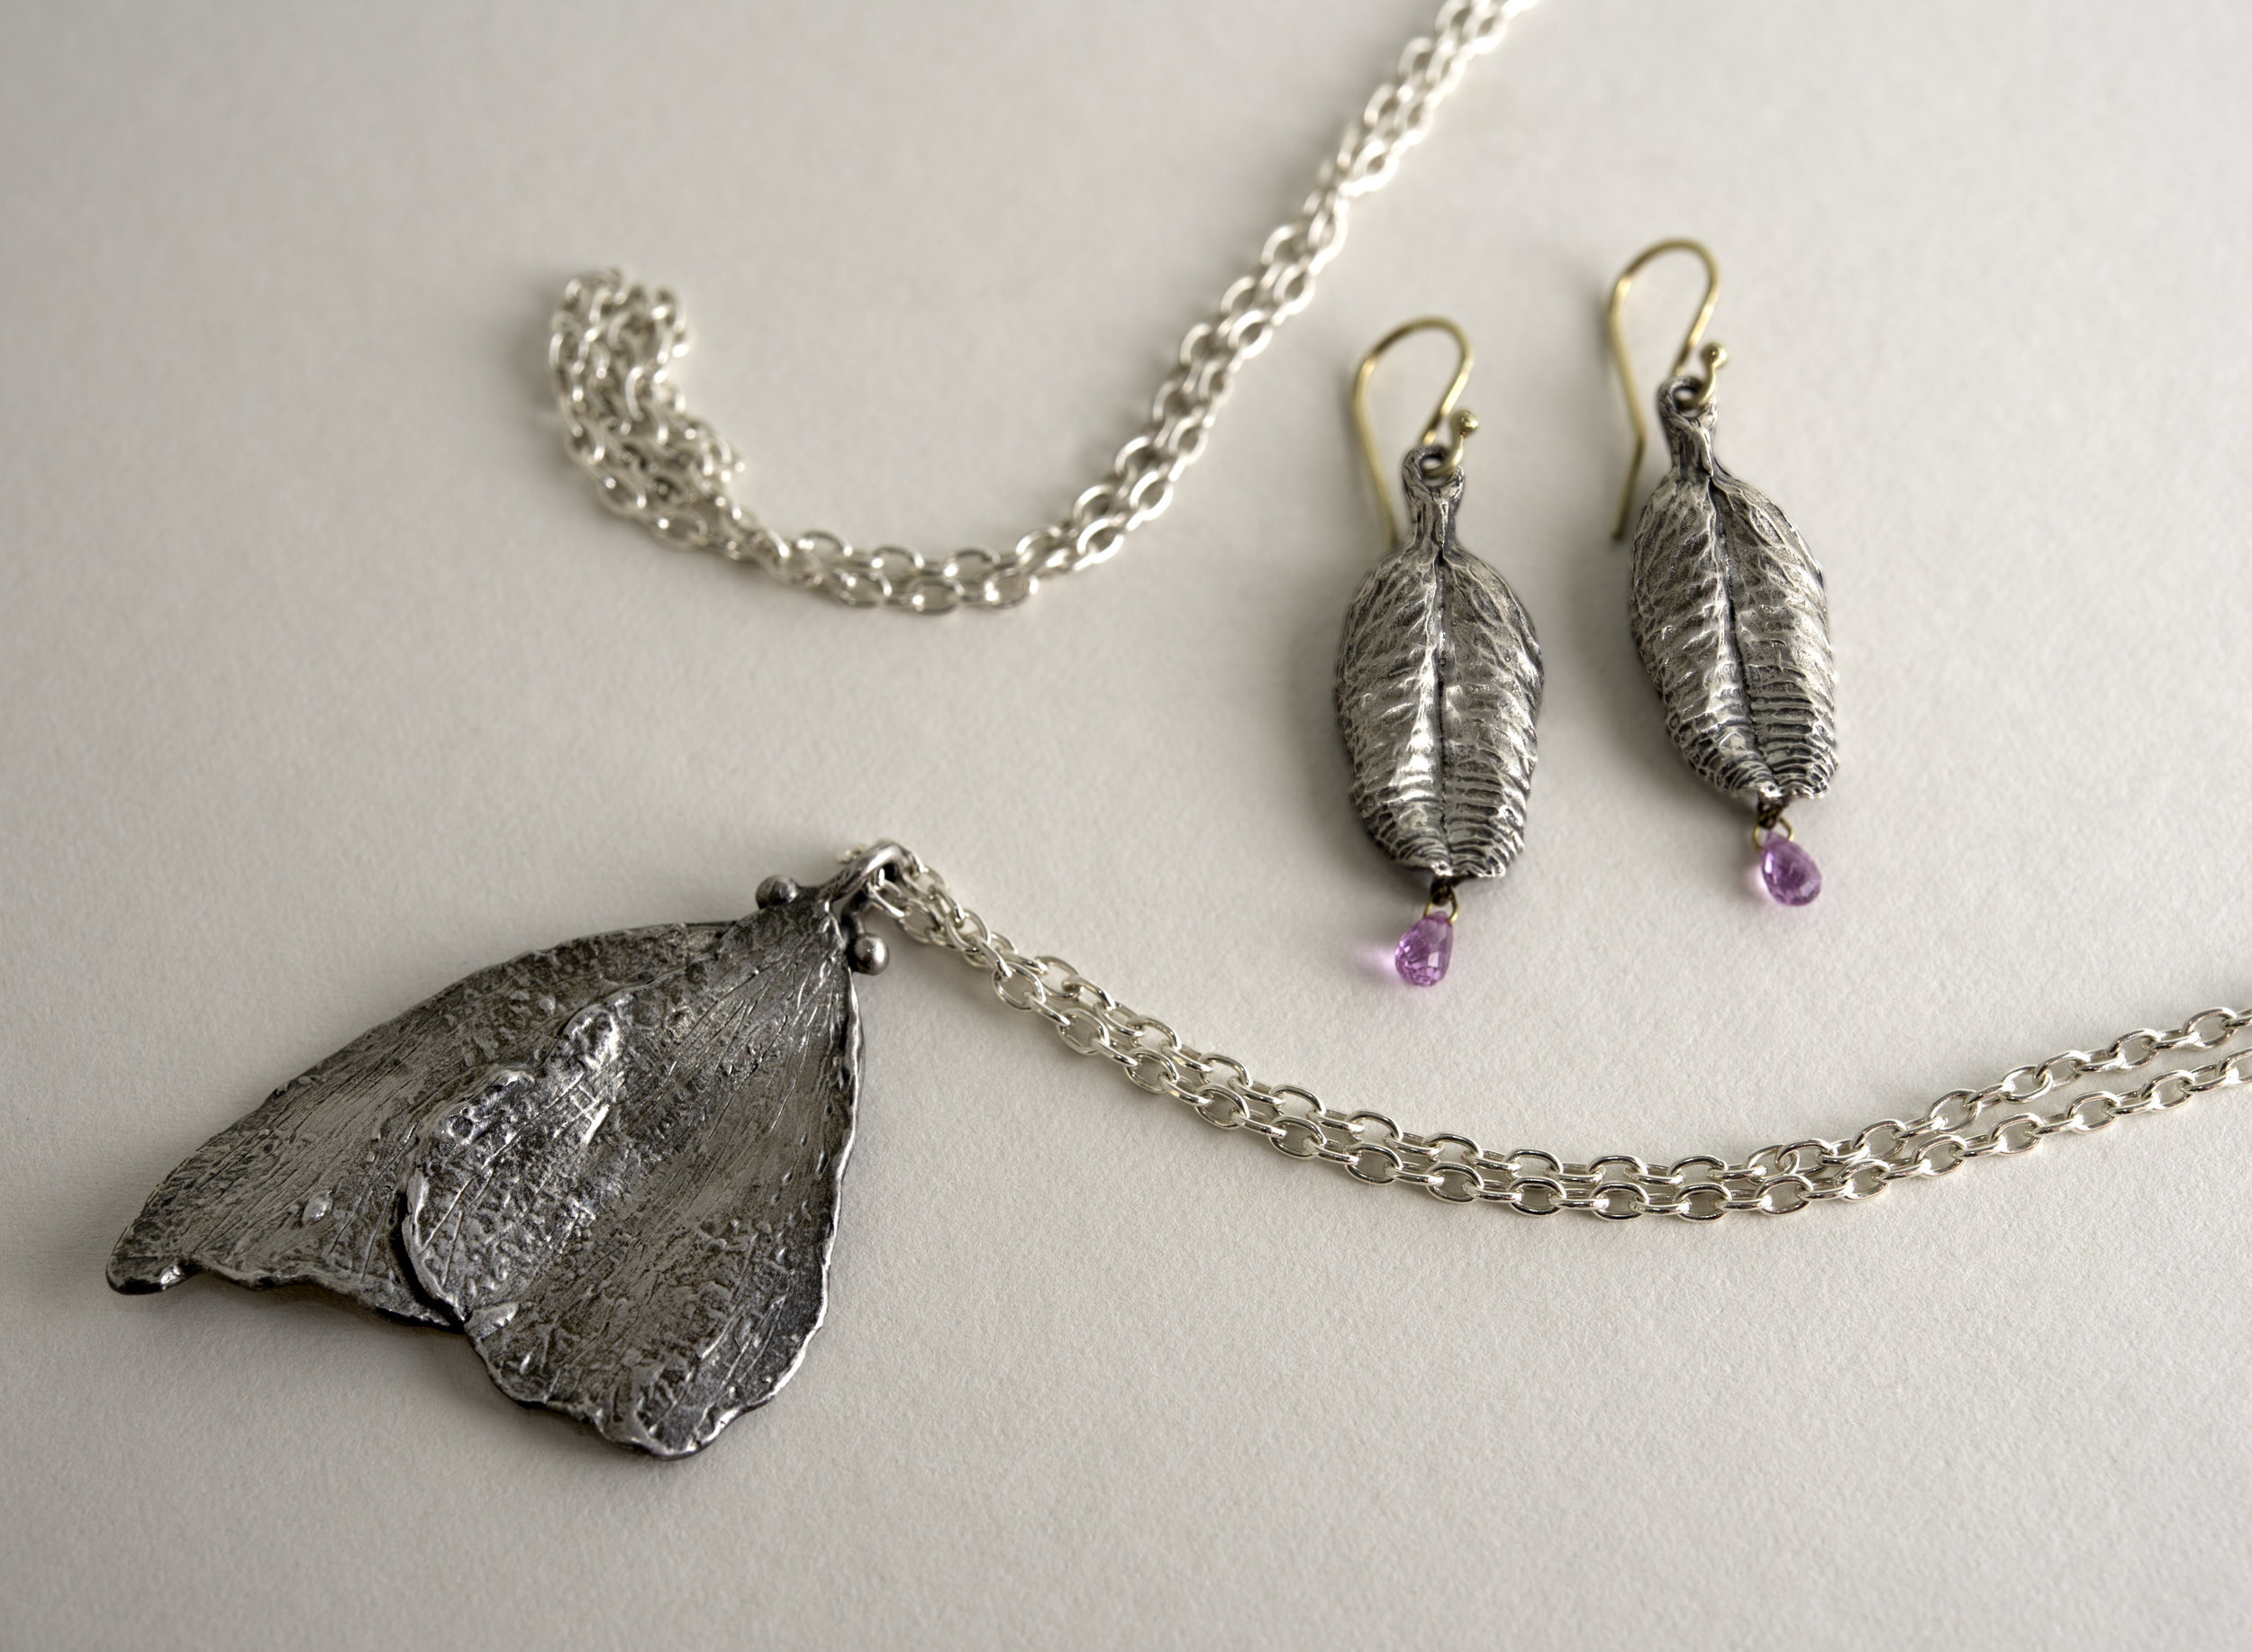 5.Sterling Silver: 14Kt  Butterfly Pendant, and Leaf Earrings with Pink Sapphires jpg.jpg